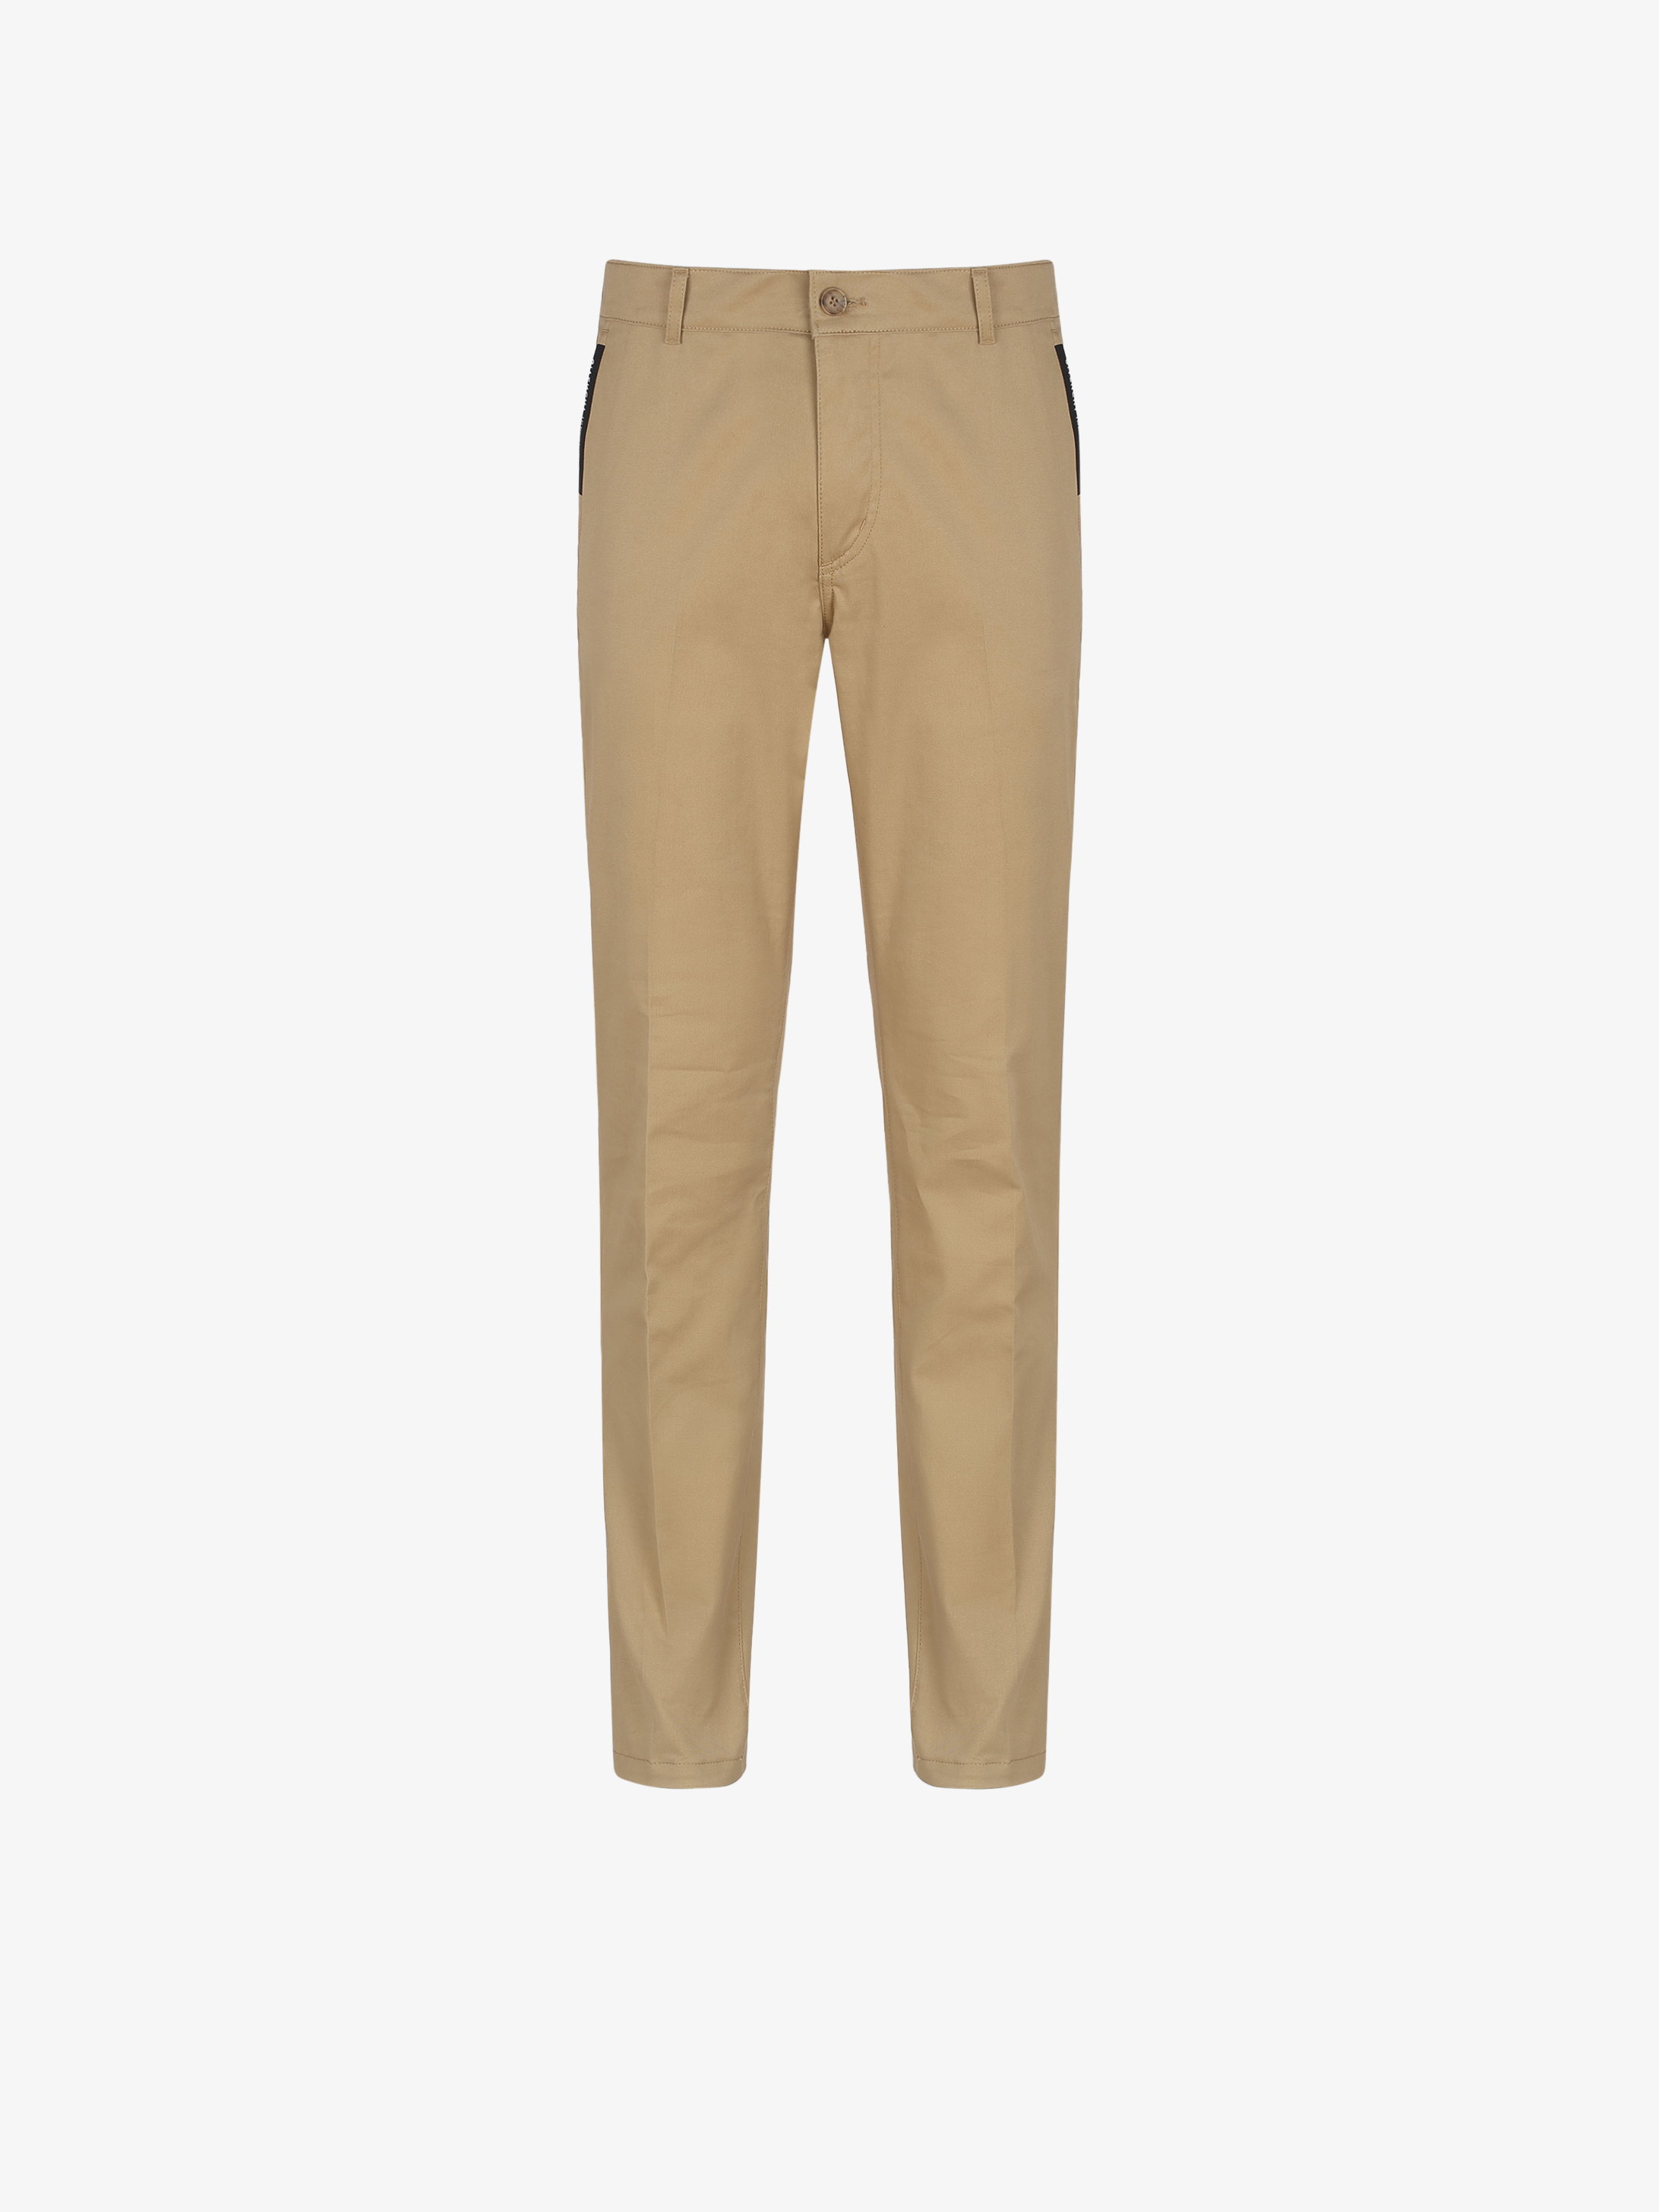 GIVENCHY ADDRESS slim fit chino pants